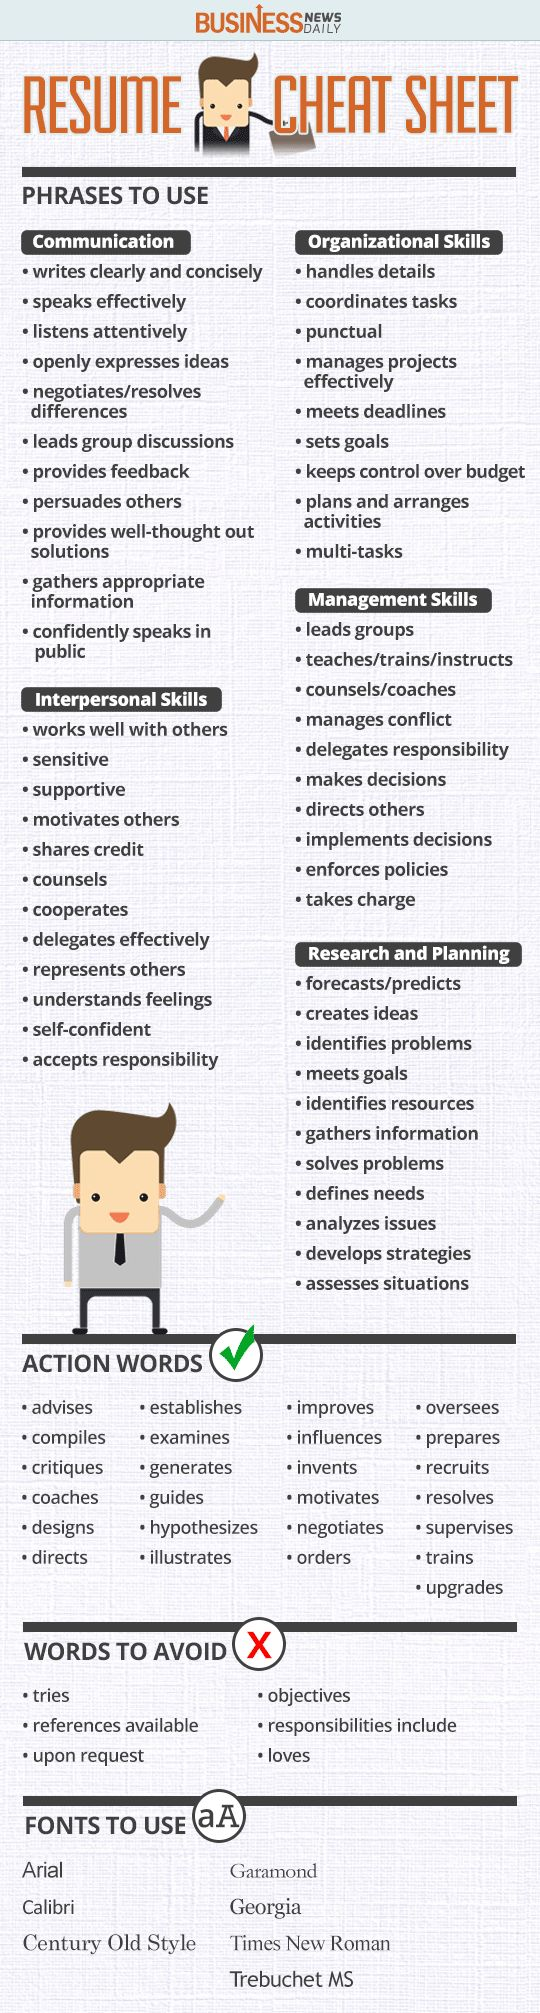 Opposenewapstandardsus  Unusual  Ideas About Resume On Pinterest  Cv Format Resume Cv And  With Glamorous Resume Cheat Sheet Infographic Andrews Almost Done With A Complete Unit On Employment Which With Beautiful Case Worker Resume Also Field Service Engineer Resume In Addition Linkedin Resume Examples And Professional Nanny Resume As Well As Resumes Indeed Additionally Tips For Making A Resume From Pinterestcom With Opposenewapstandardsus  Glamorous  Ideas About Resume On Pinterest  Cv Format Resume Cv And  With Beautiful Resume Cheat Sheet Infographic Andrews Almost Done With A Complete Unit On Employment Which And Unusual Case Worker Resume Also Field Service Engineer Resume In Addition Linkedin Resume Examples From Pinterestcom